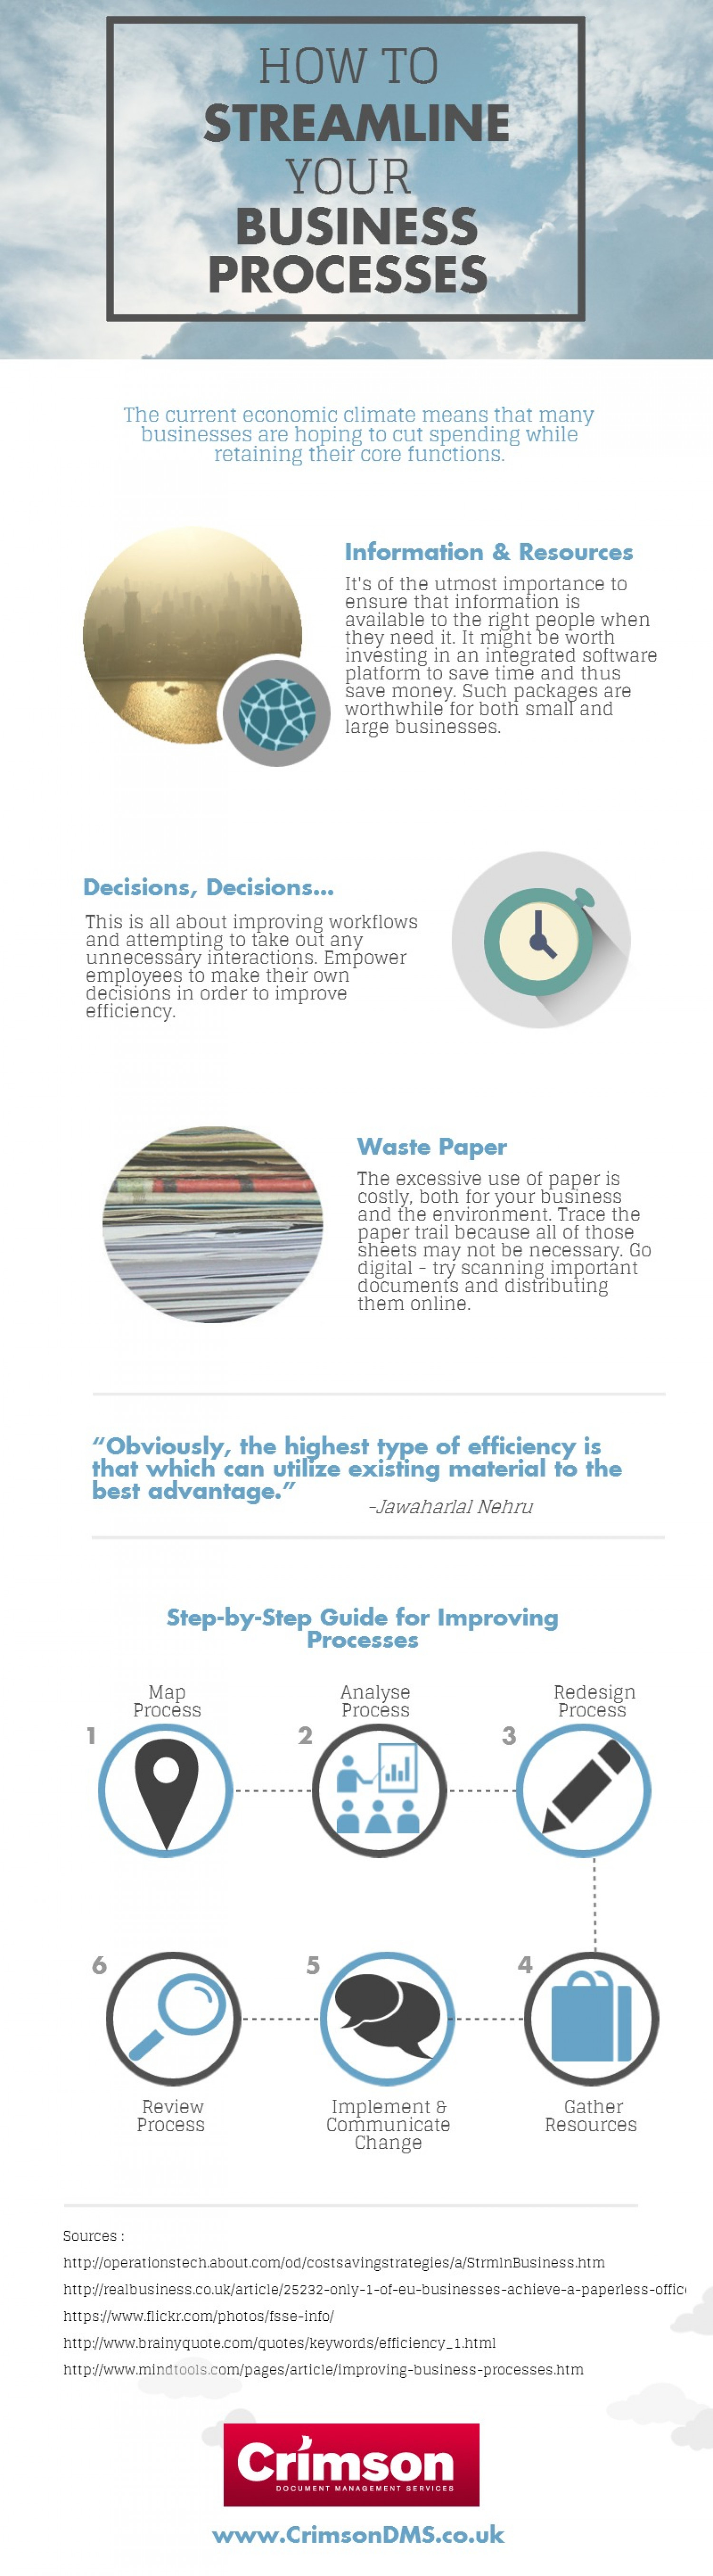 Streamline Your Business Processes Infographic